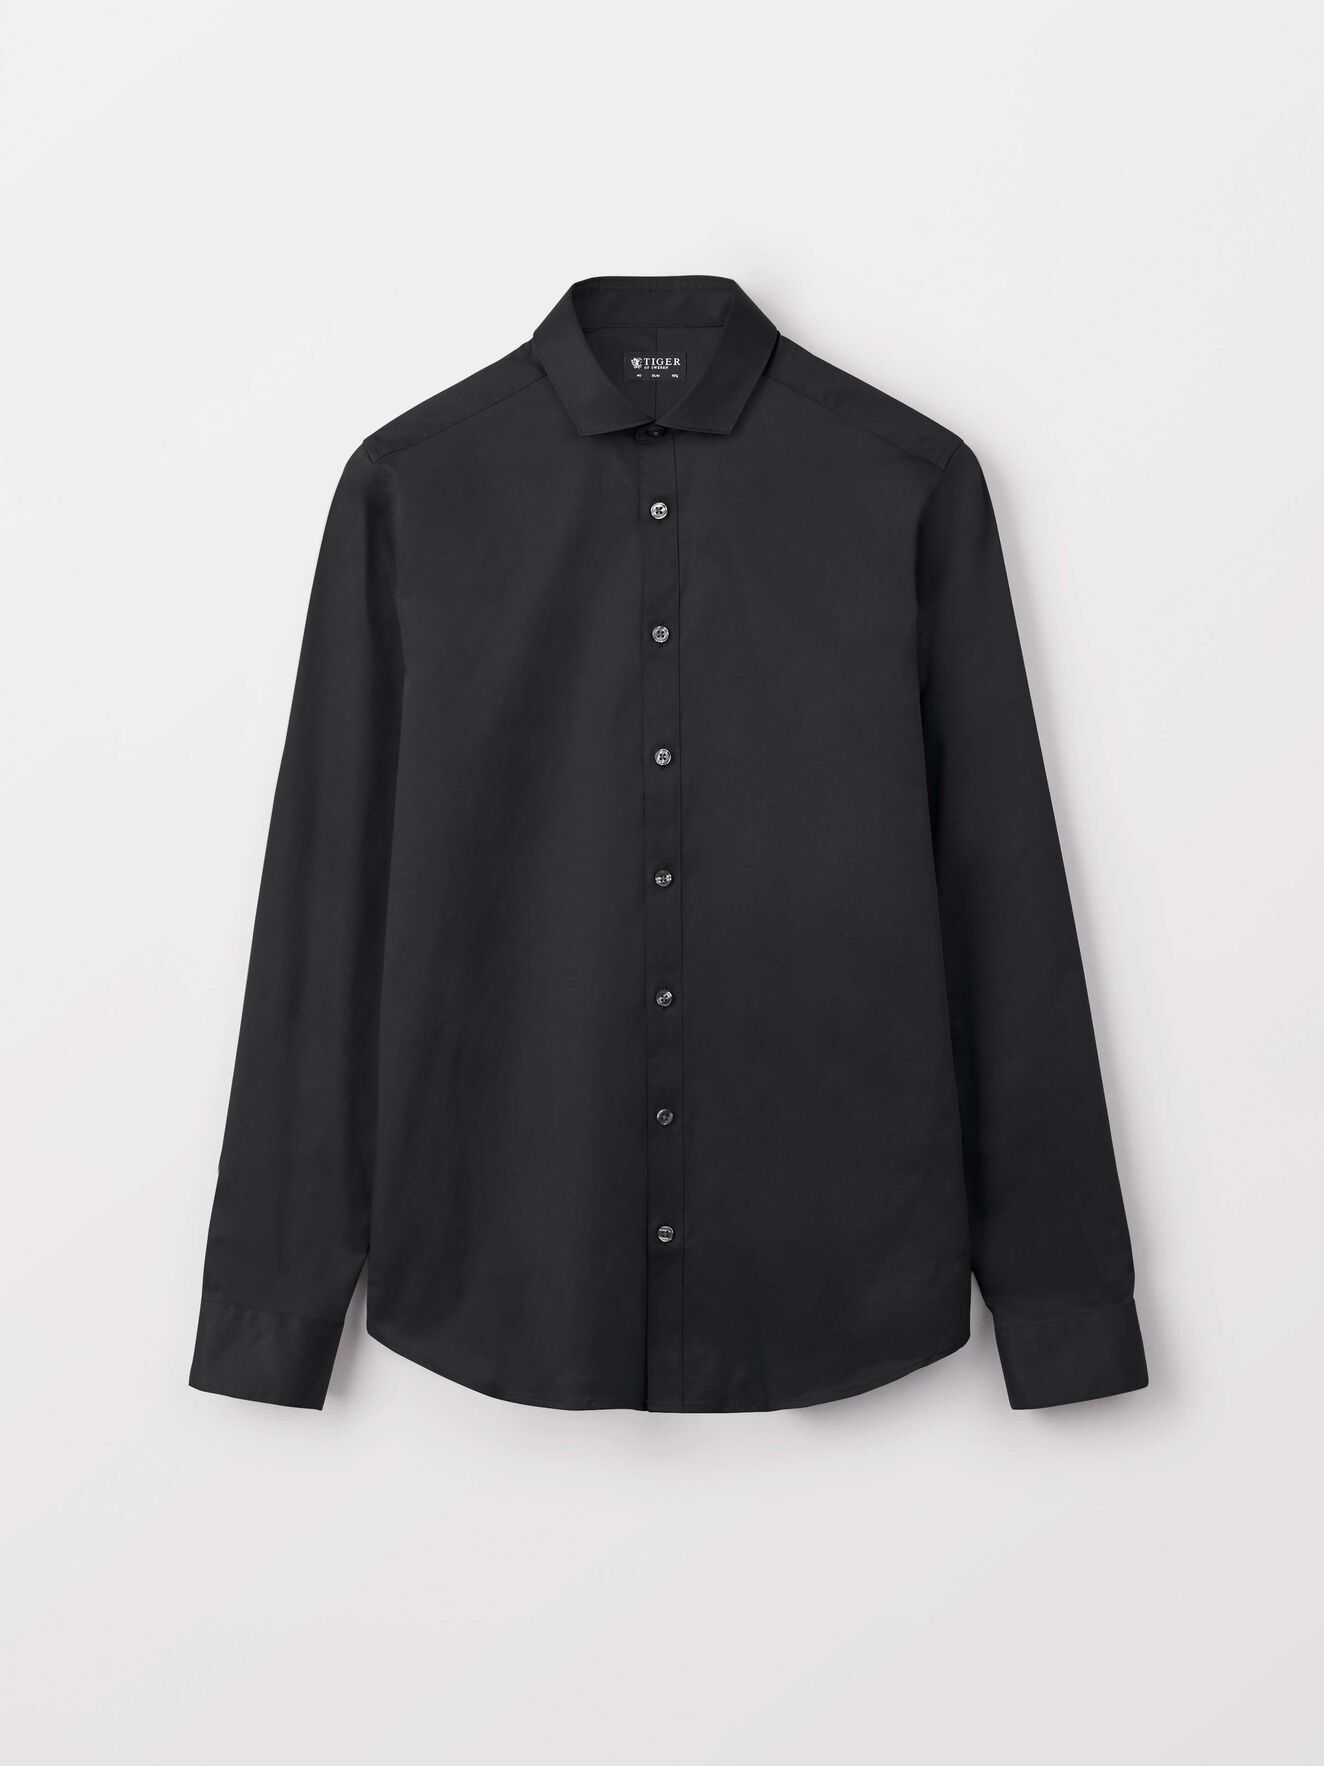 Steel 1 Shirt in Black from Tiger of Sweden